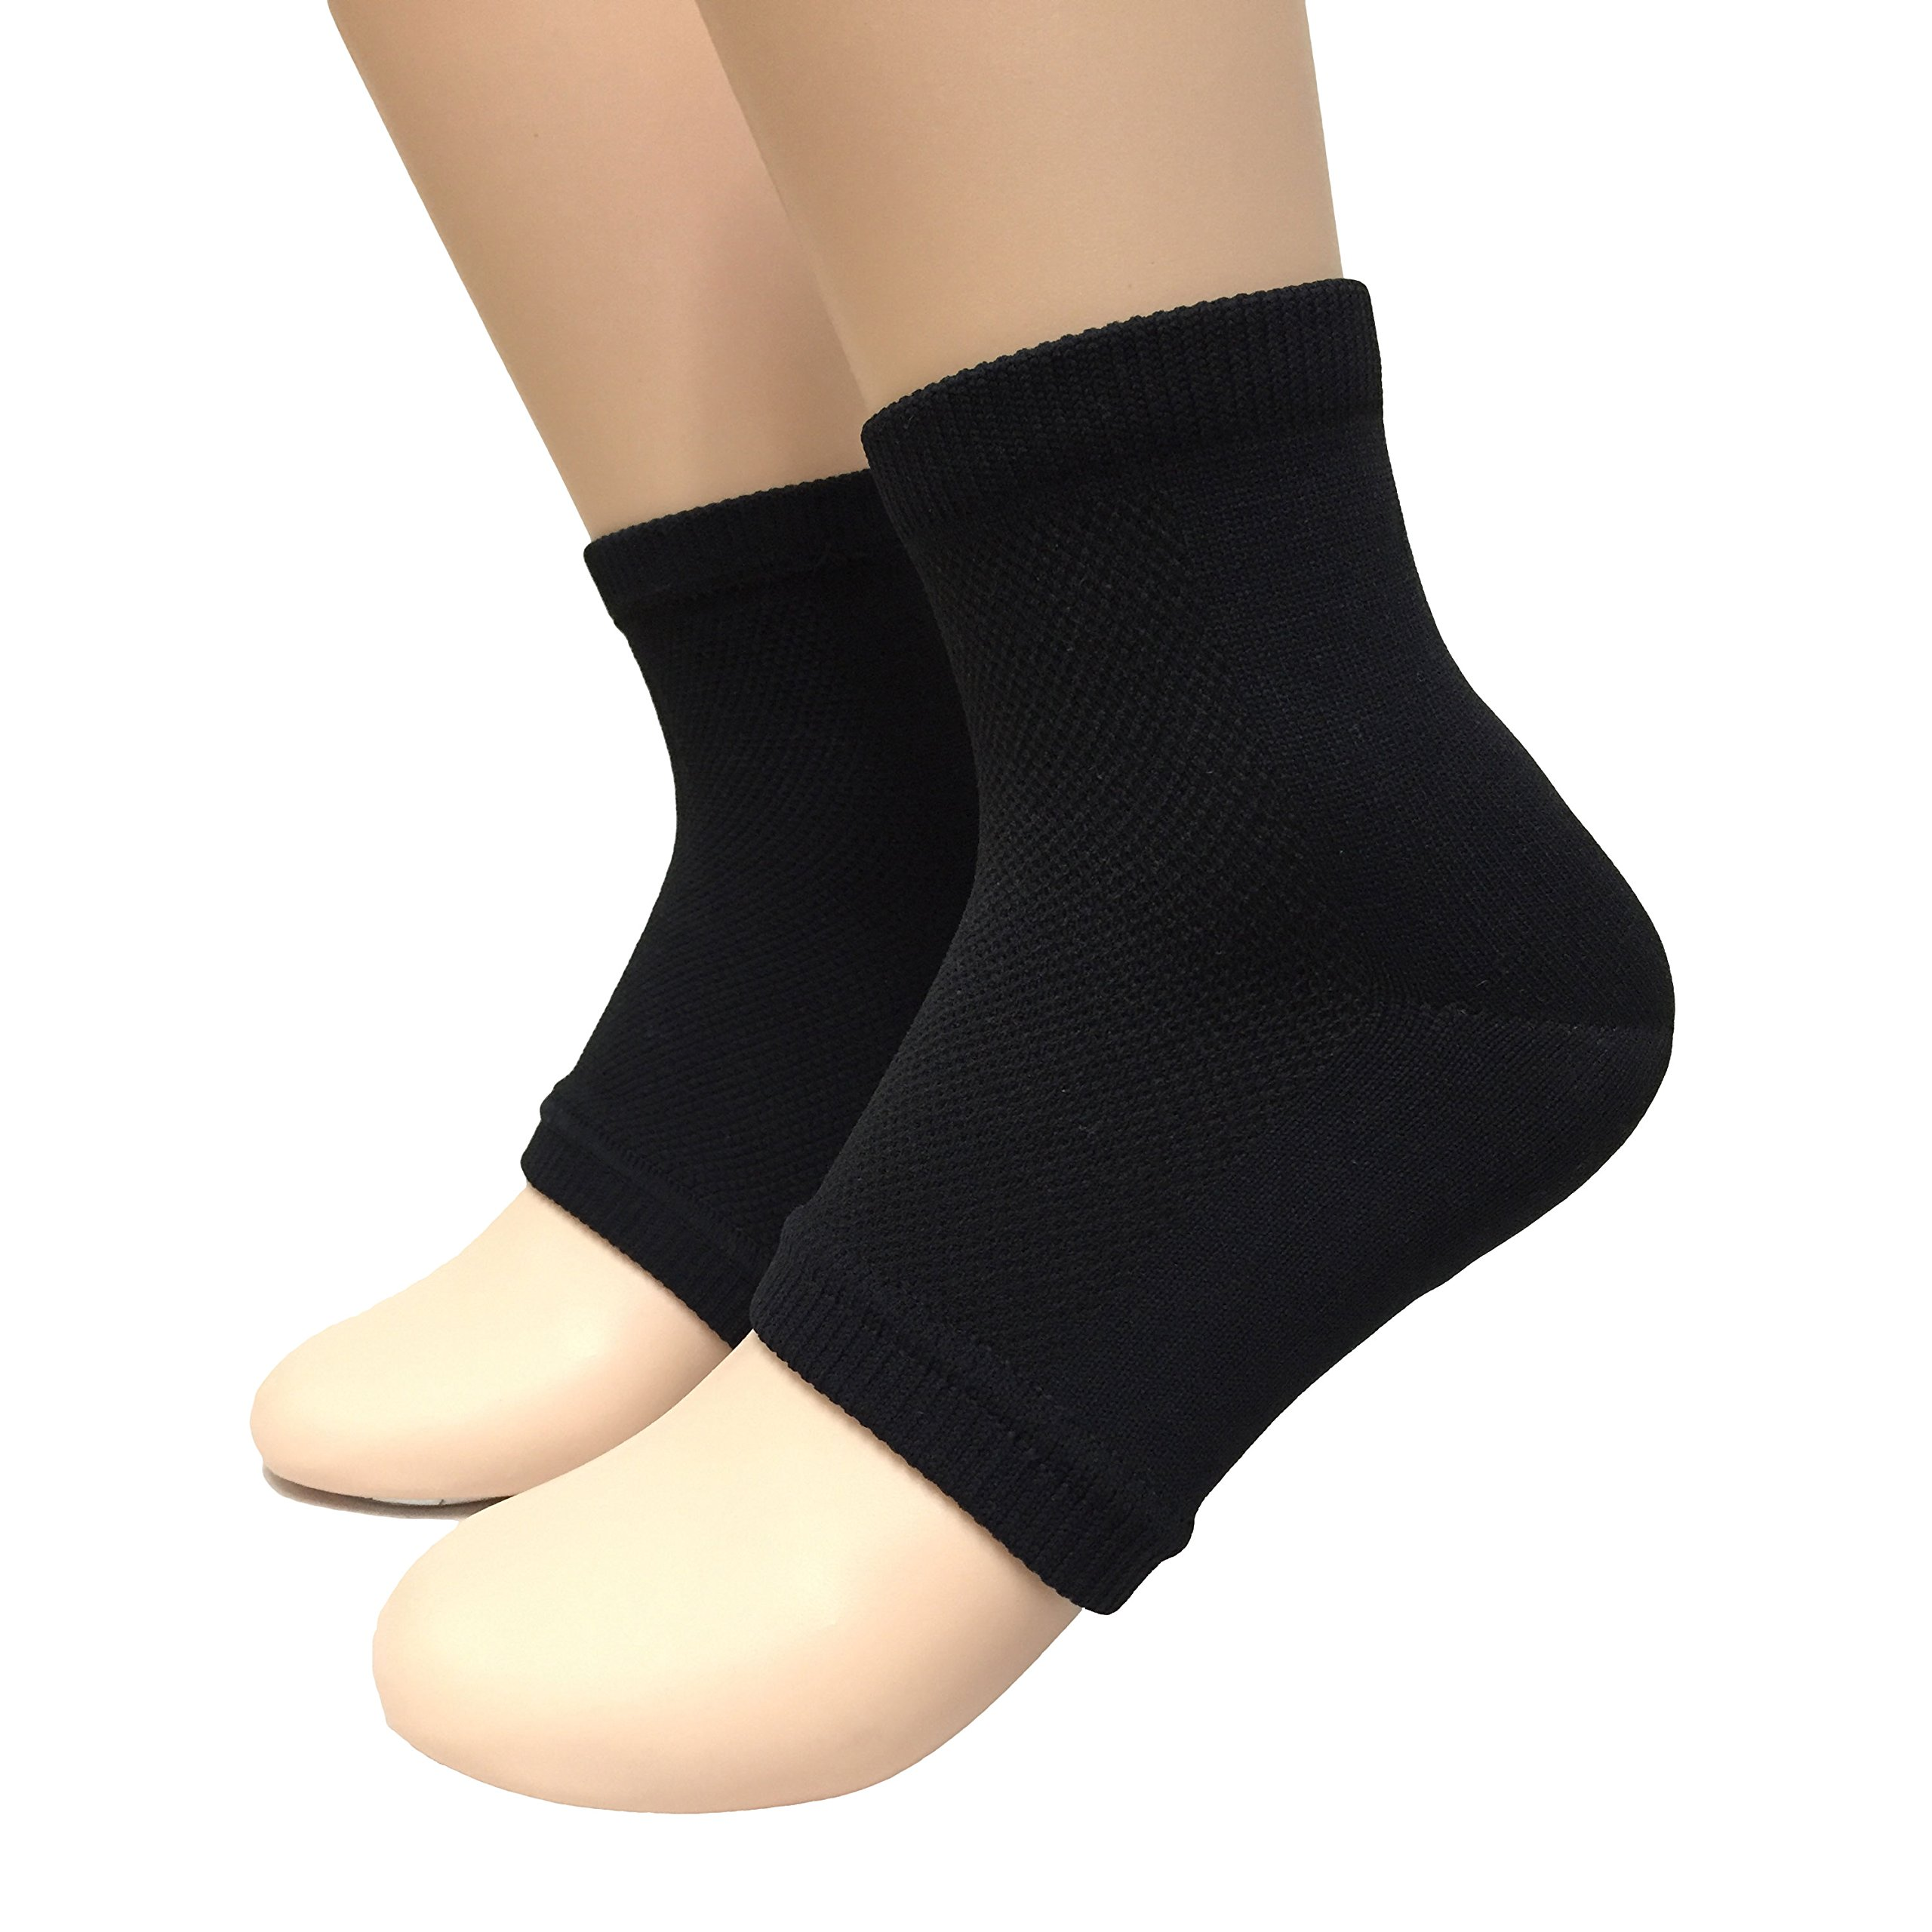 BOGO acebone Beauty Spa Moisturizing Gel Socks for Dry Hard Cracked Skin - One Size - Comfortable Fit - Black